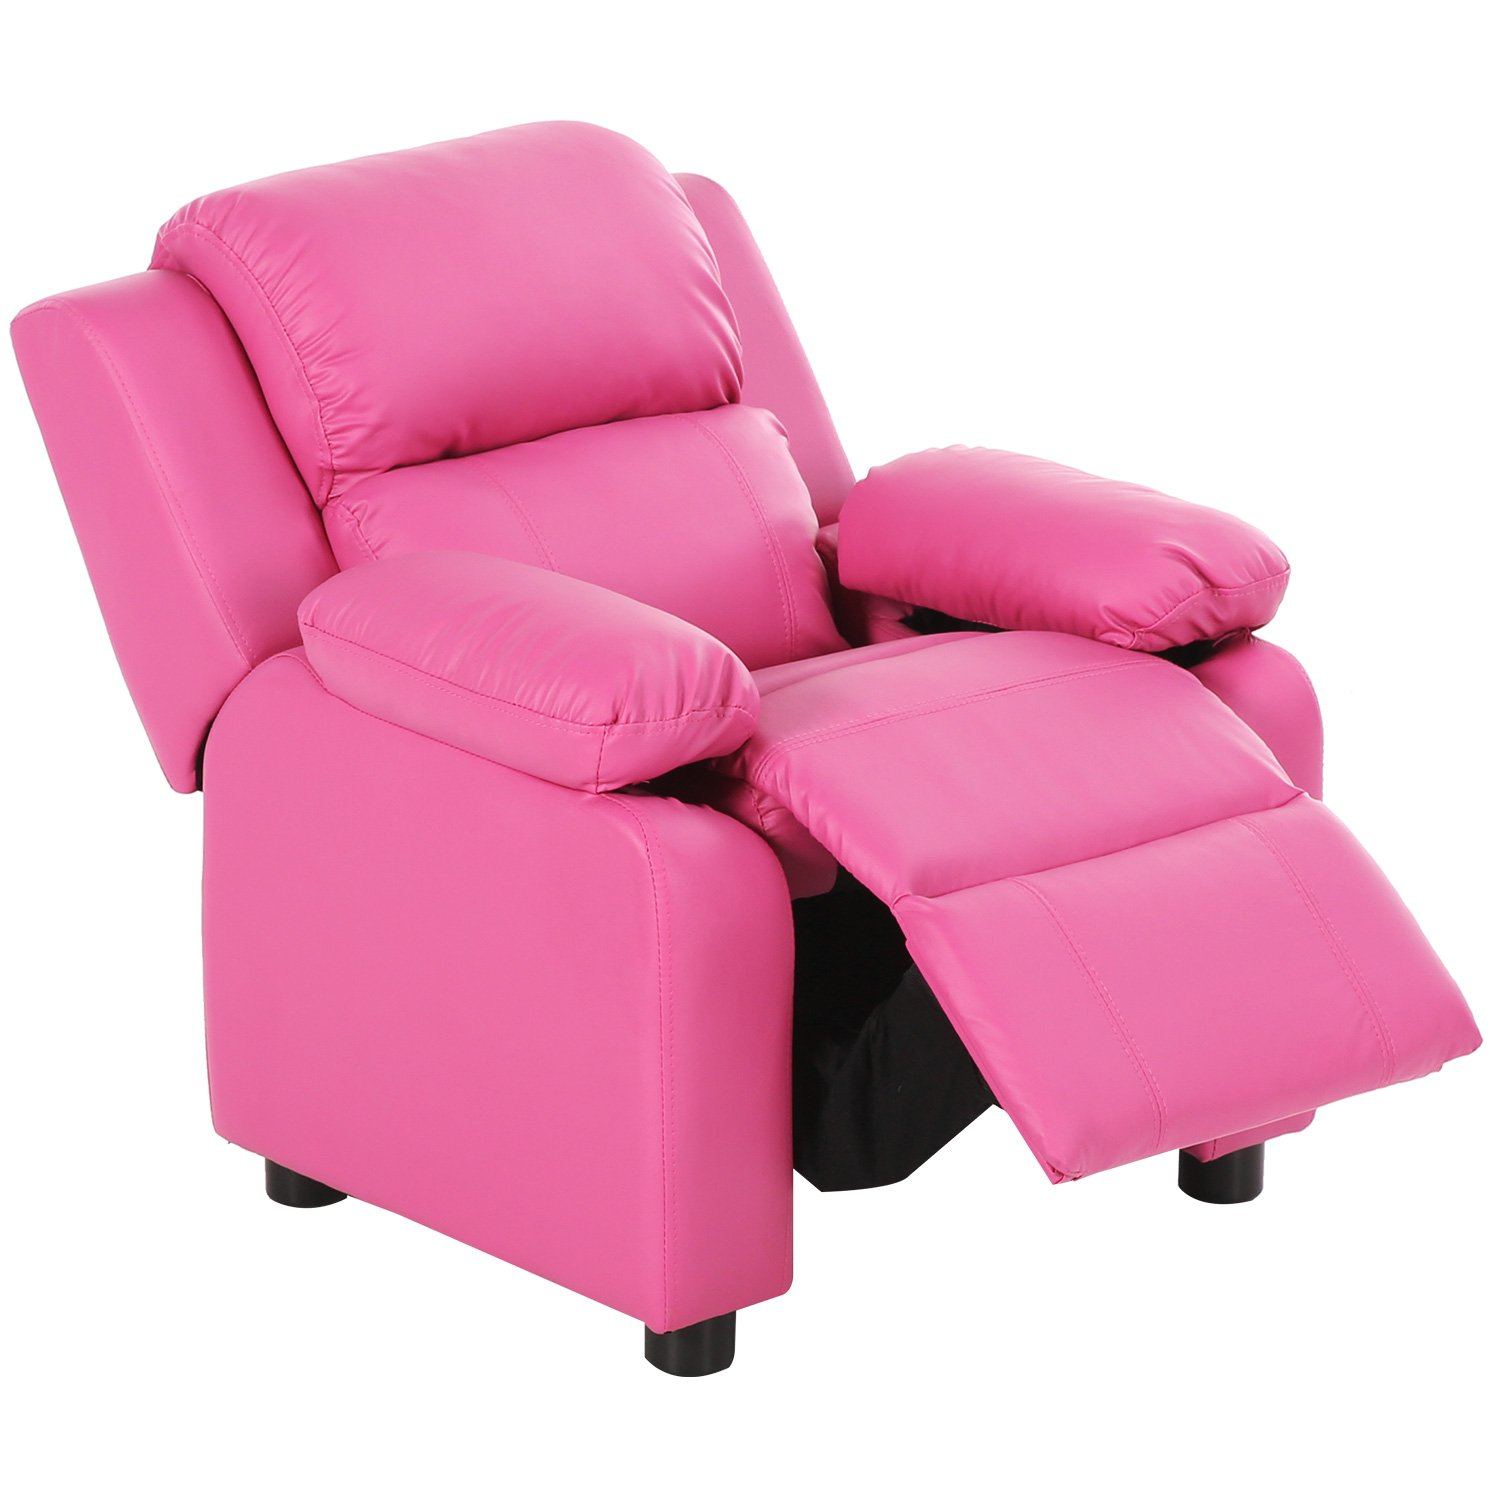 Harper&Bright Designs Kids Recliner with Storage Arms PU Leather Sofa Chair for Child (Pink)